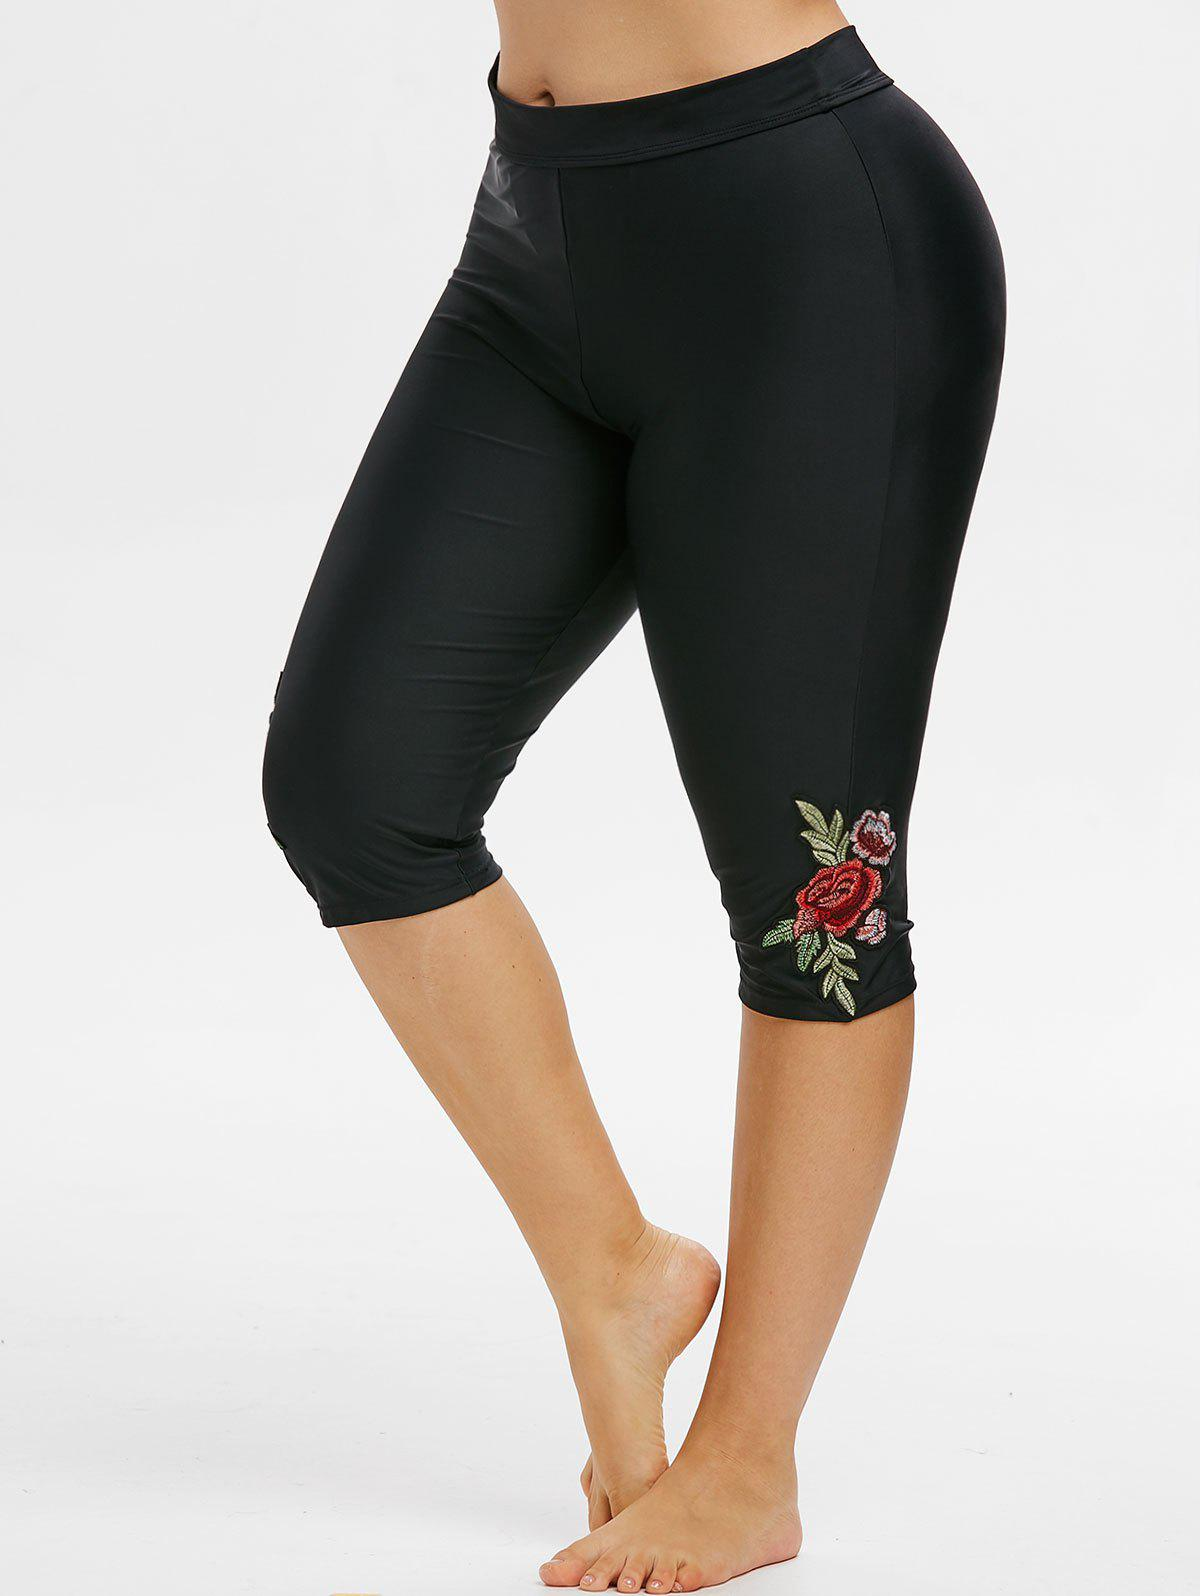 Floral Embroidered High Waisted Plus Size Swim Bottom - BLACK 4X